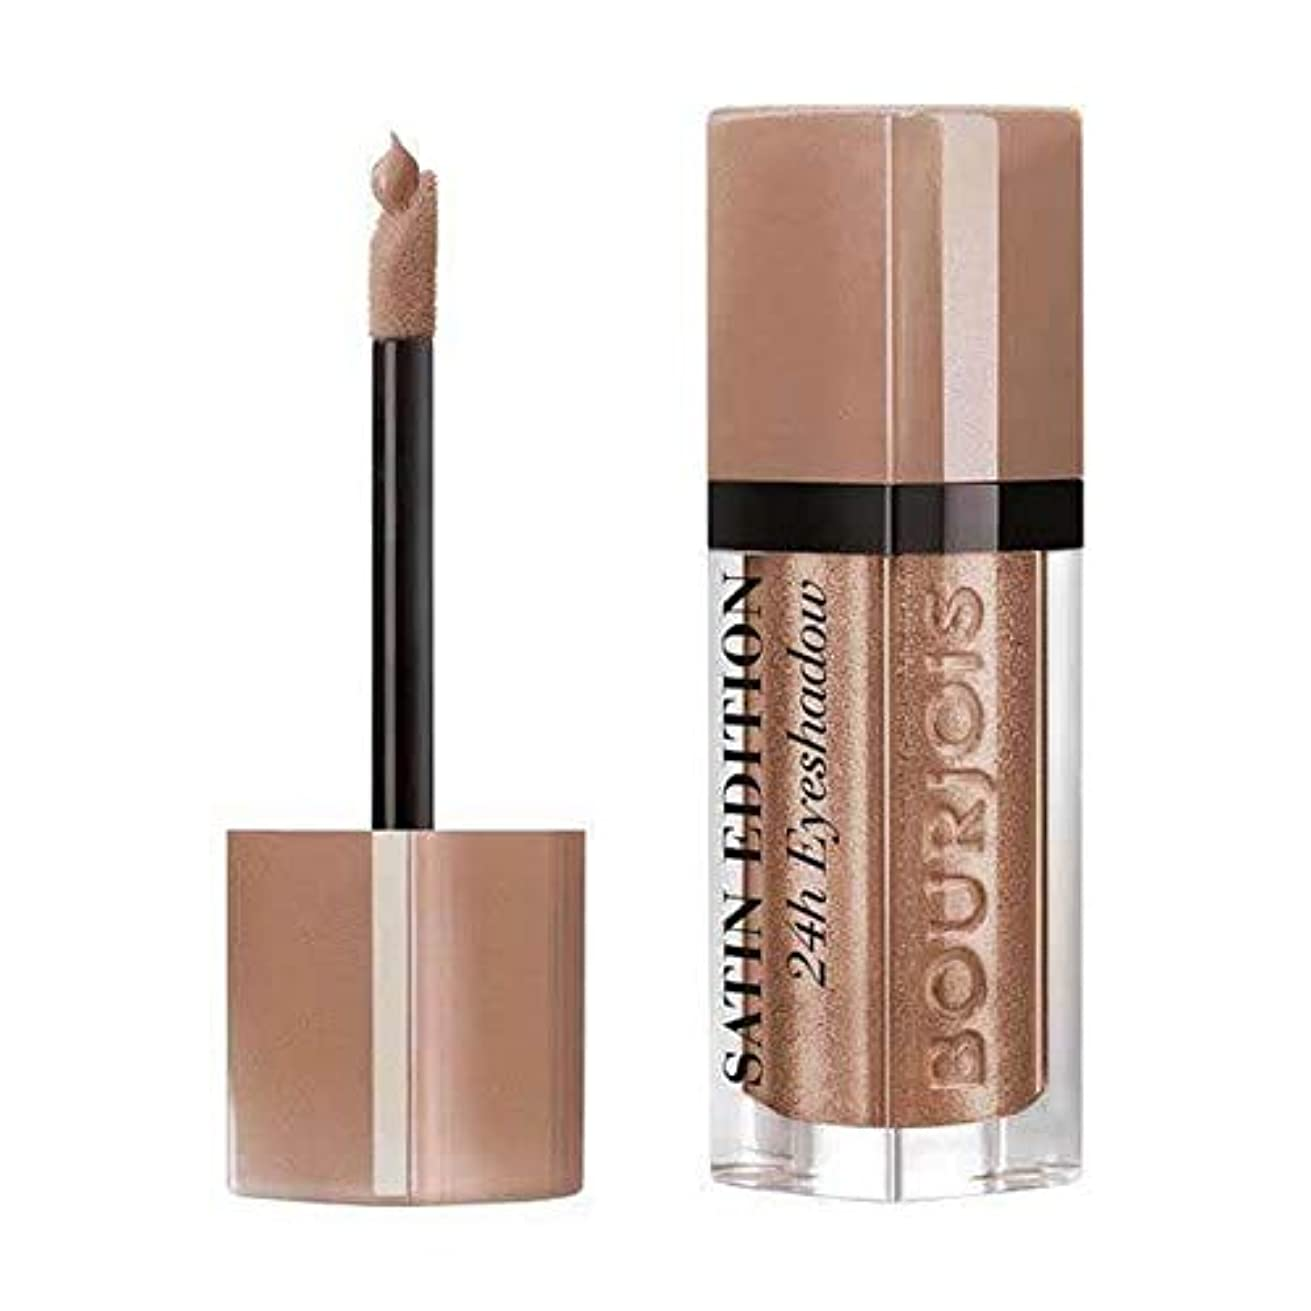 旋律的適性服[Bourjois ] 液体アイシャドウAbracada'Brown 24時間ブルジョワサテン版 - Bourjois Satin Edition 24HR Liquid Eyeshadow Abracada'brown...